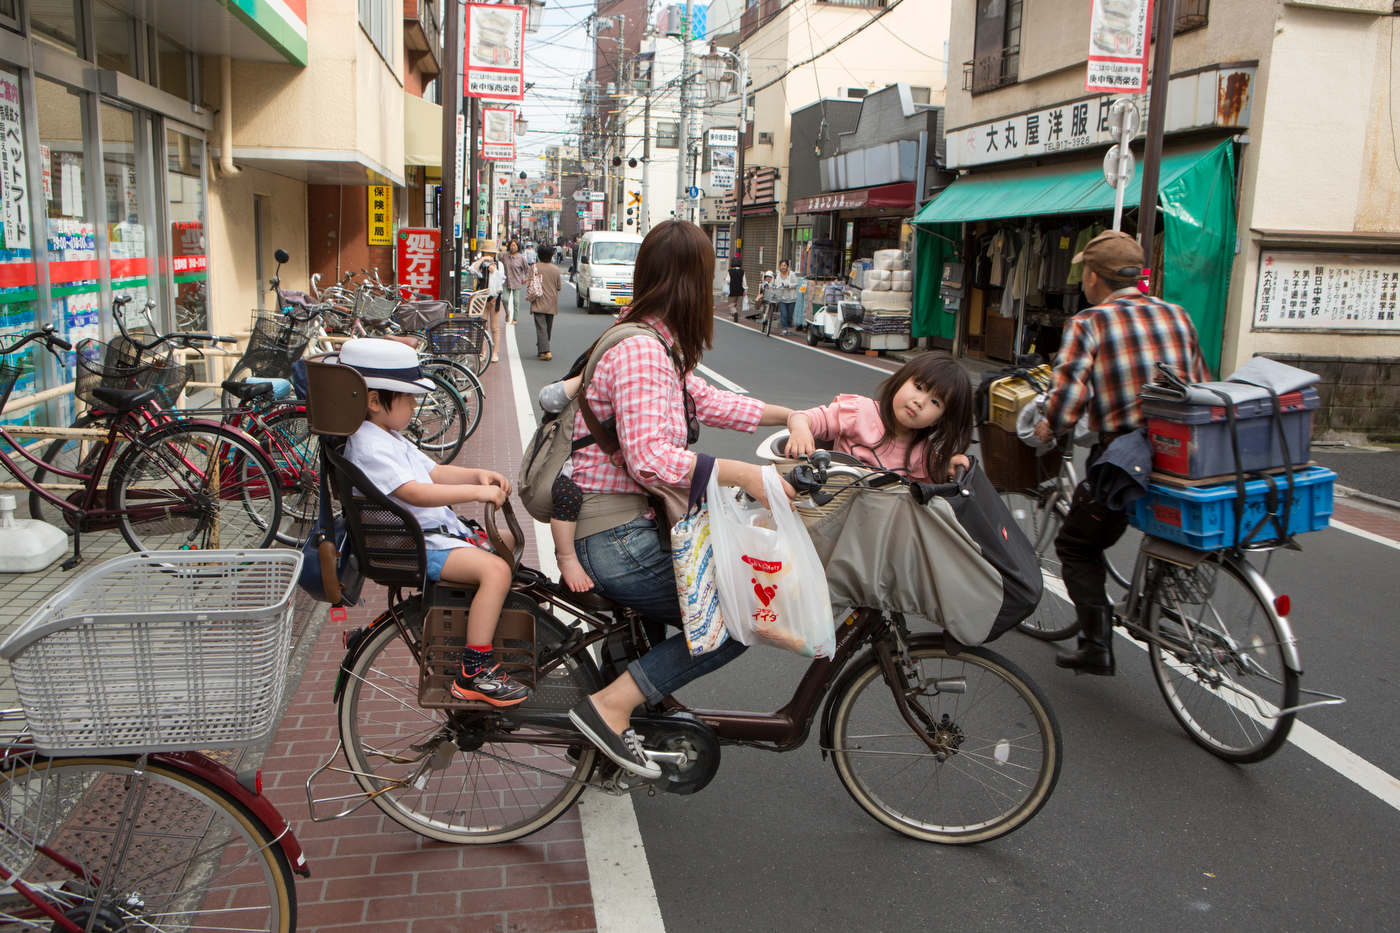 Woman on a bicycle with her three kids, Sugamo.